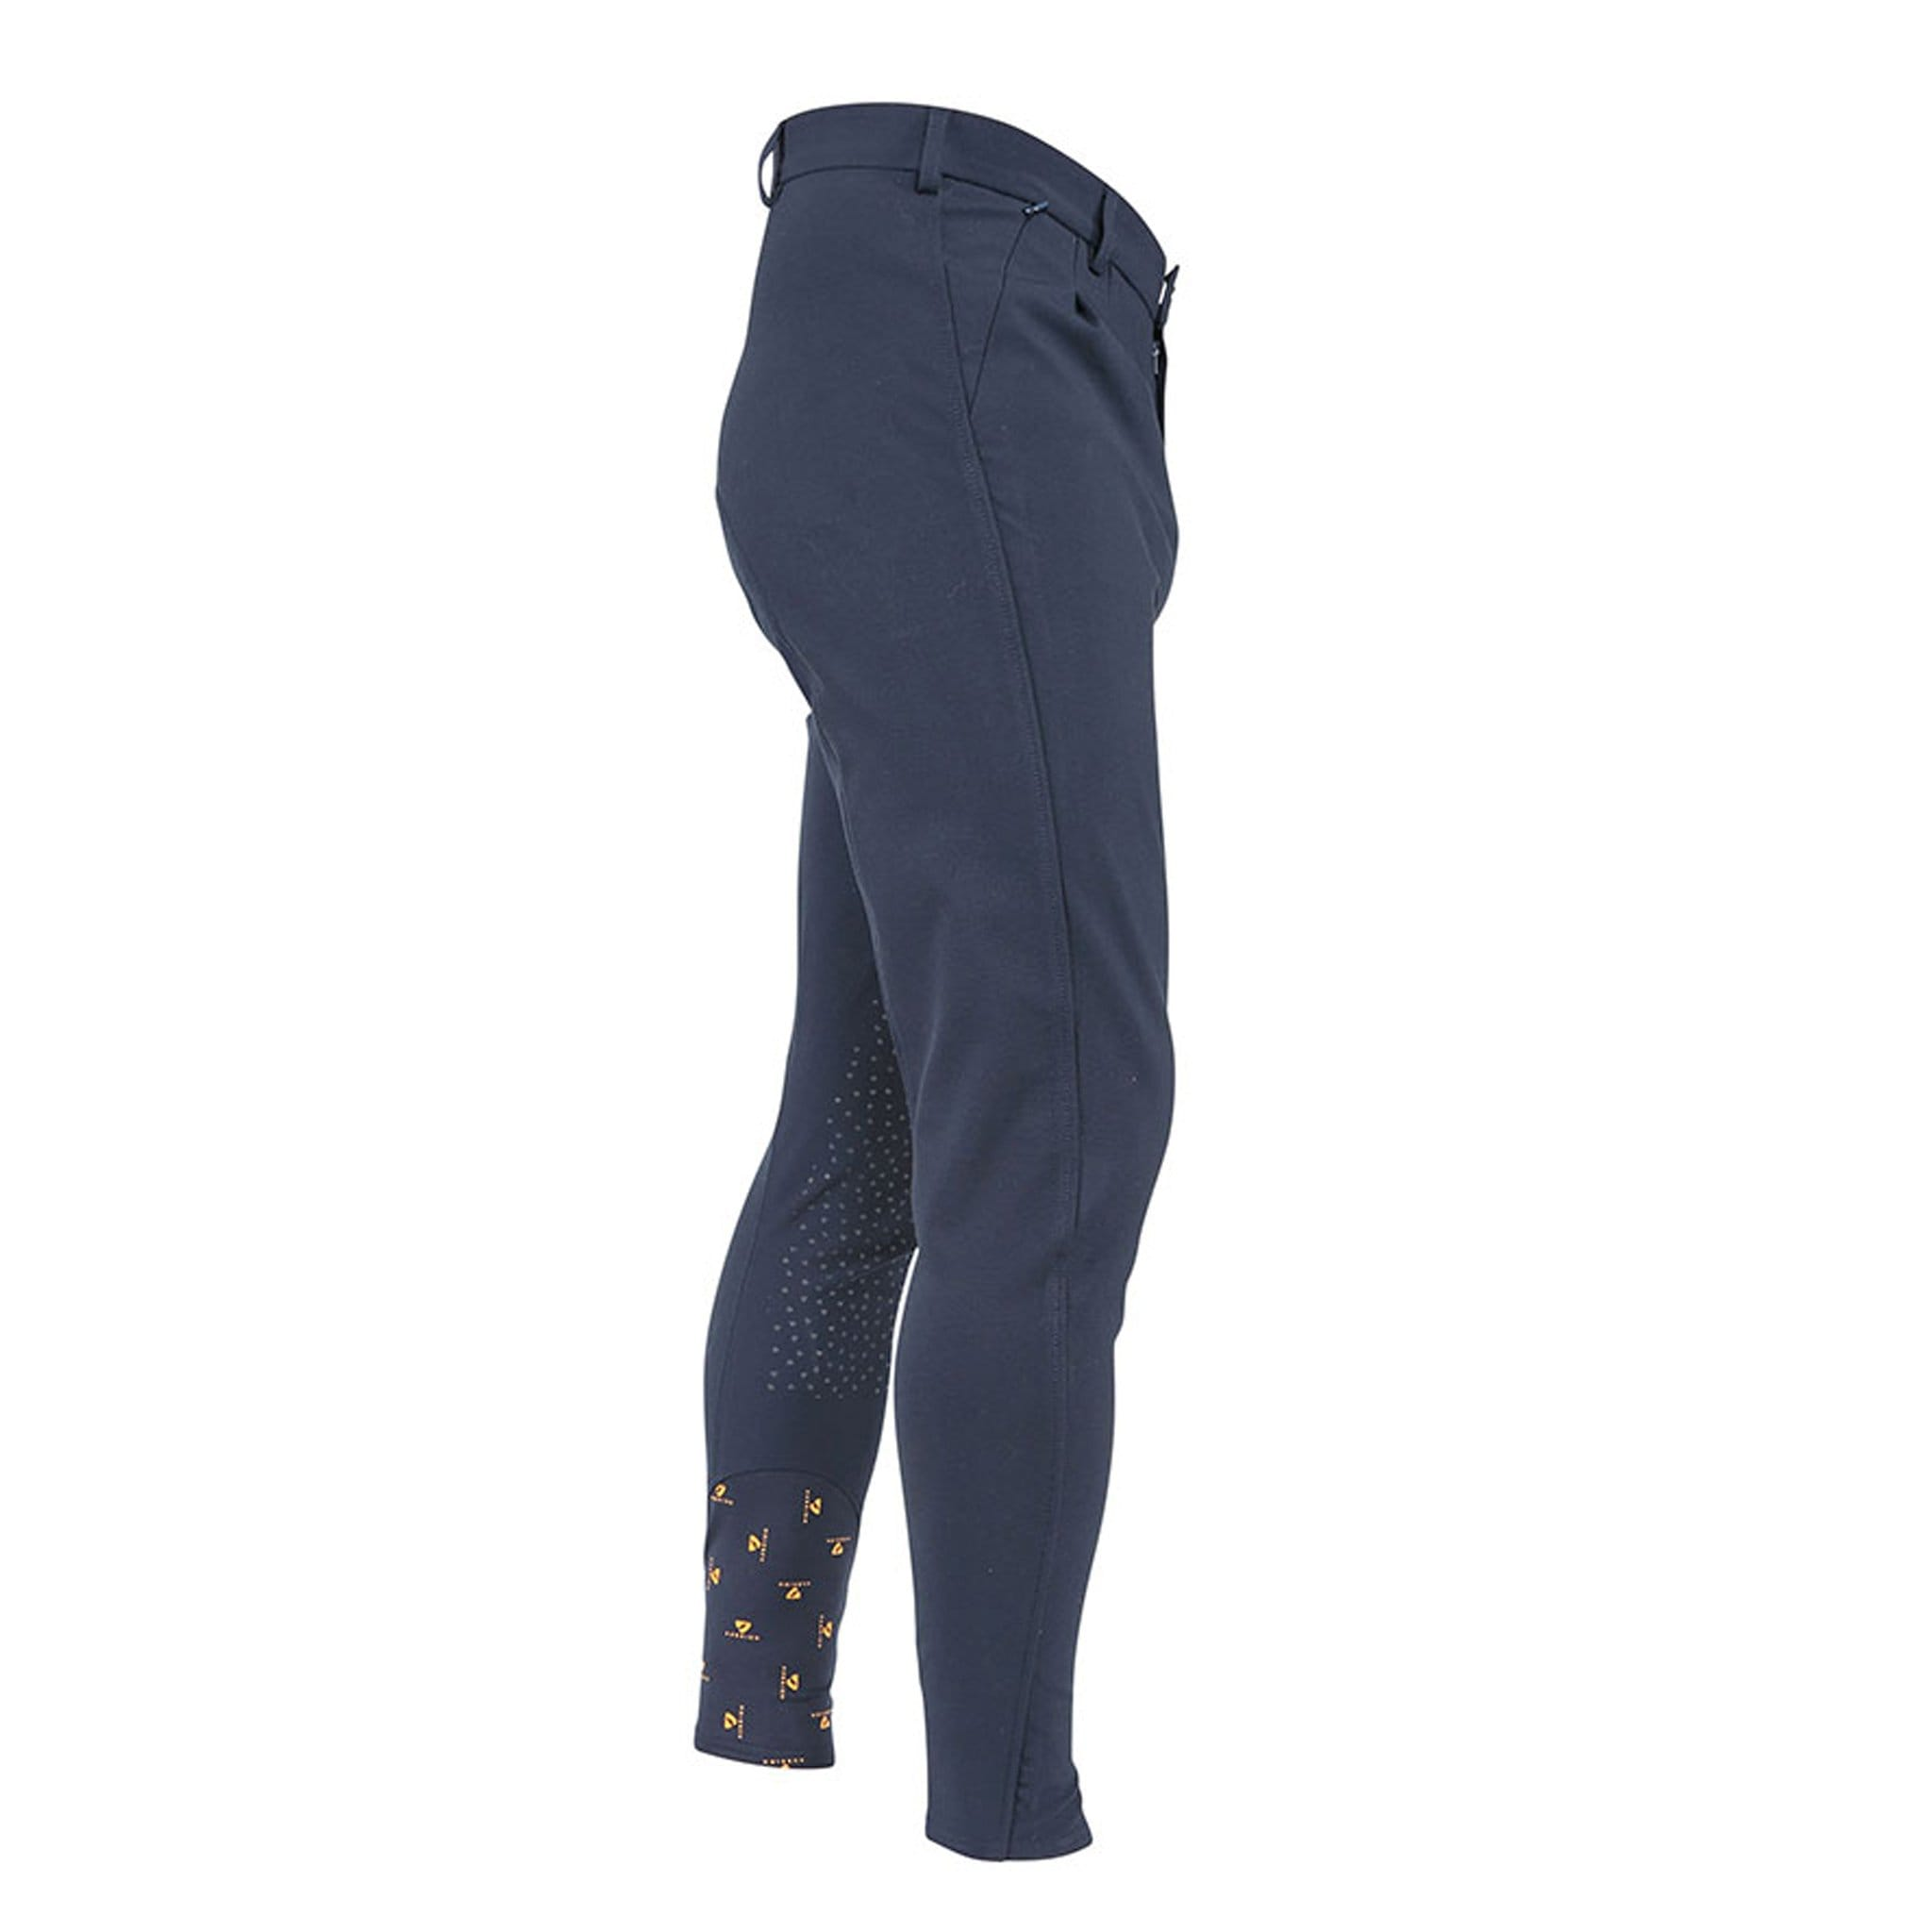 Shires Boy's Aubrion Walton Silicone Knee Patch Breeches Navy 8143.